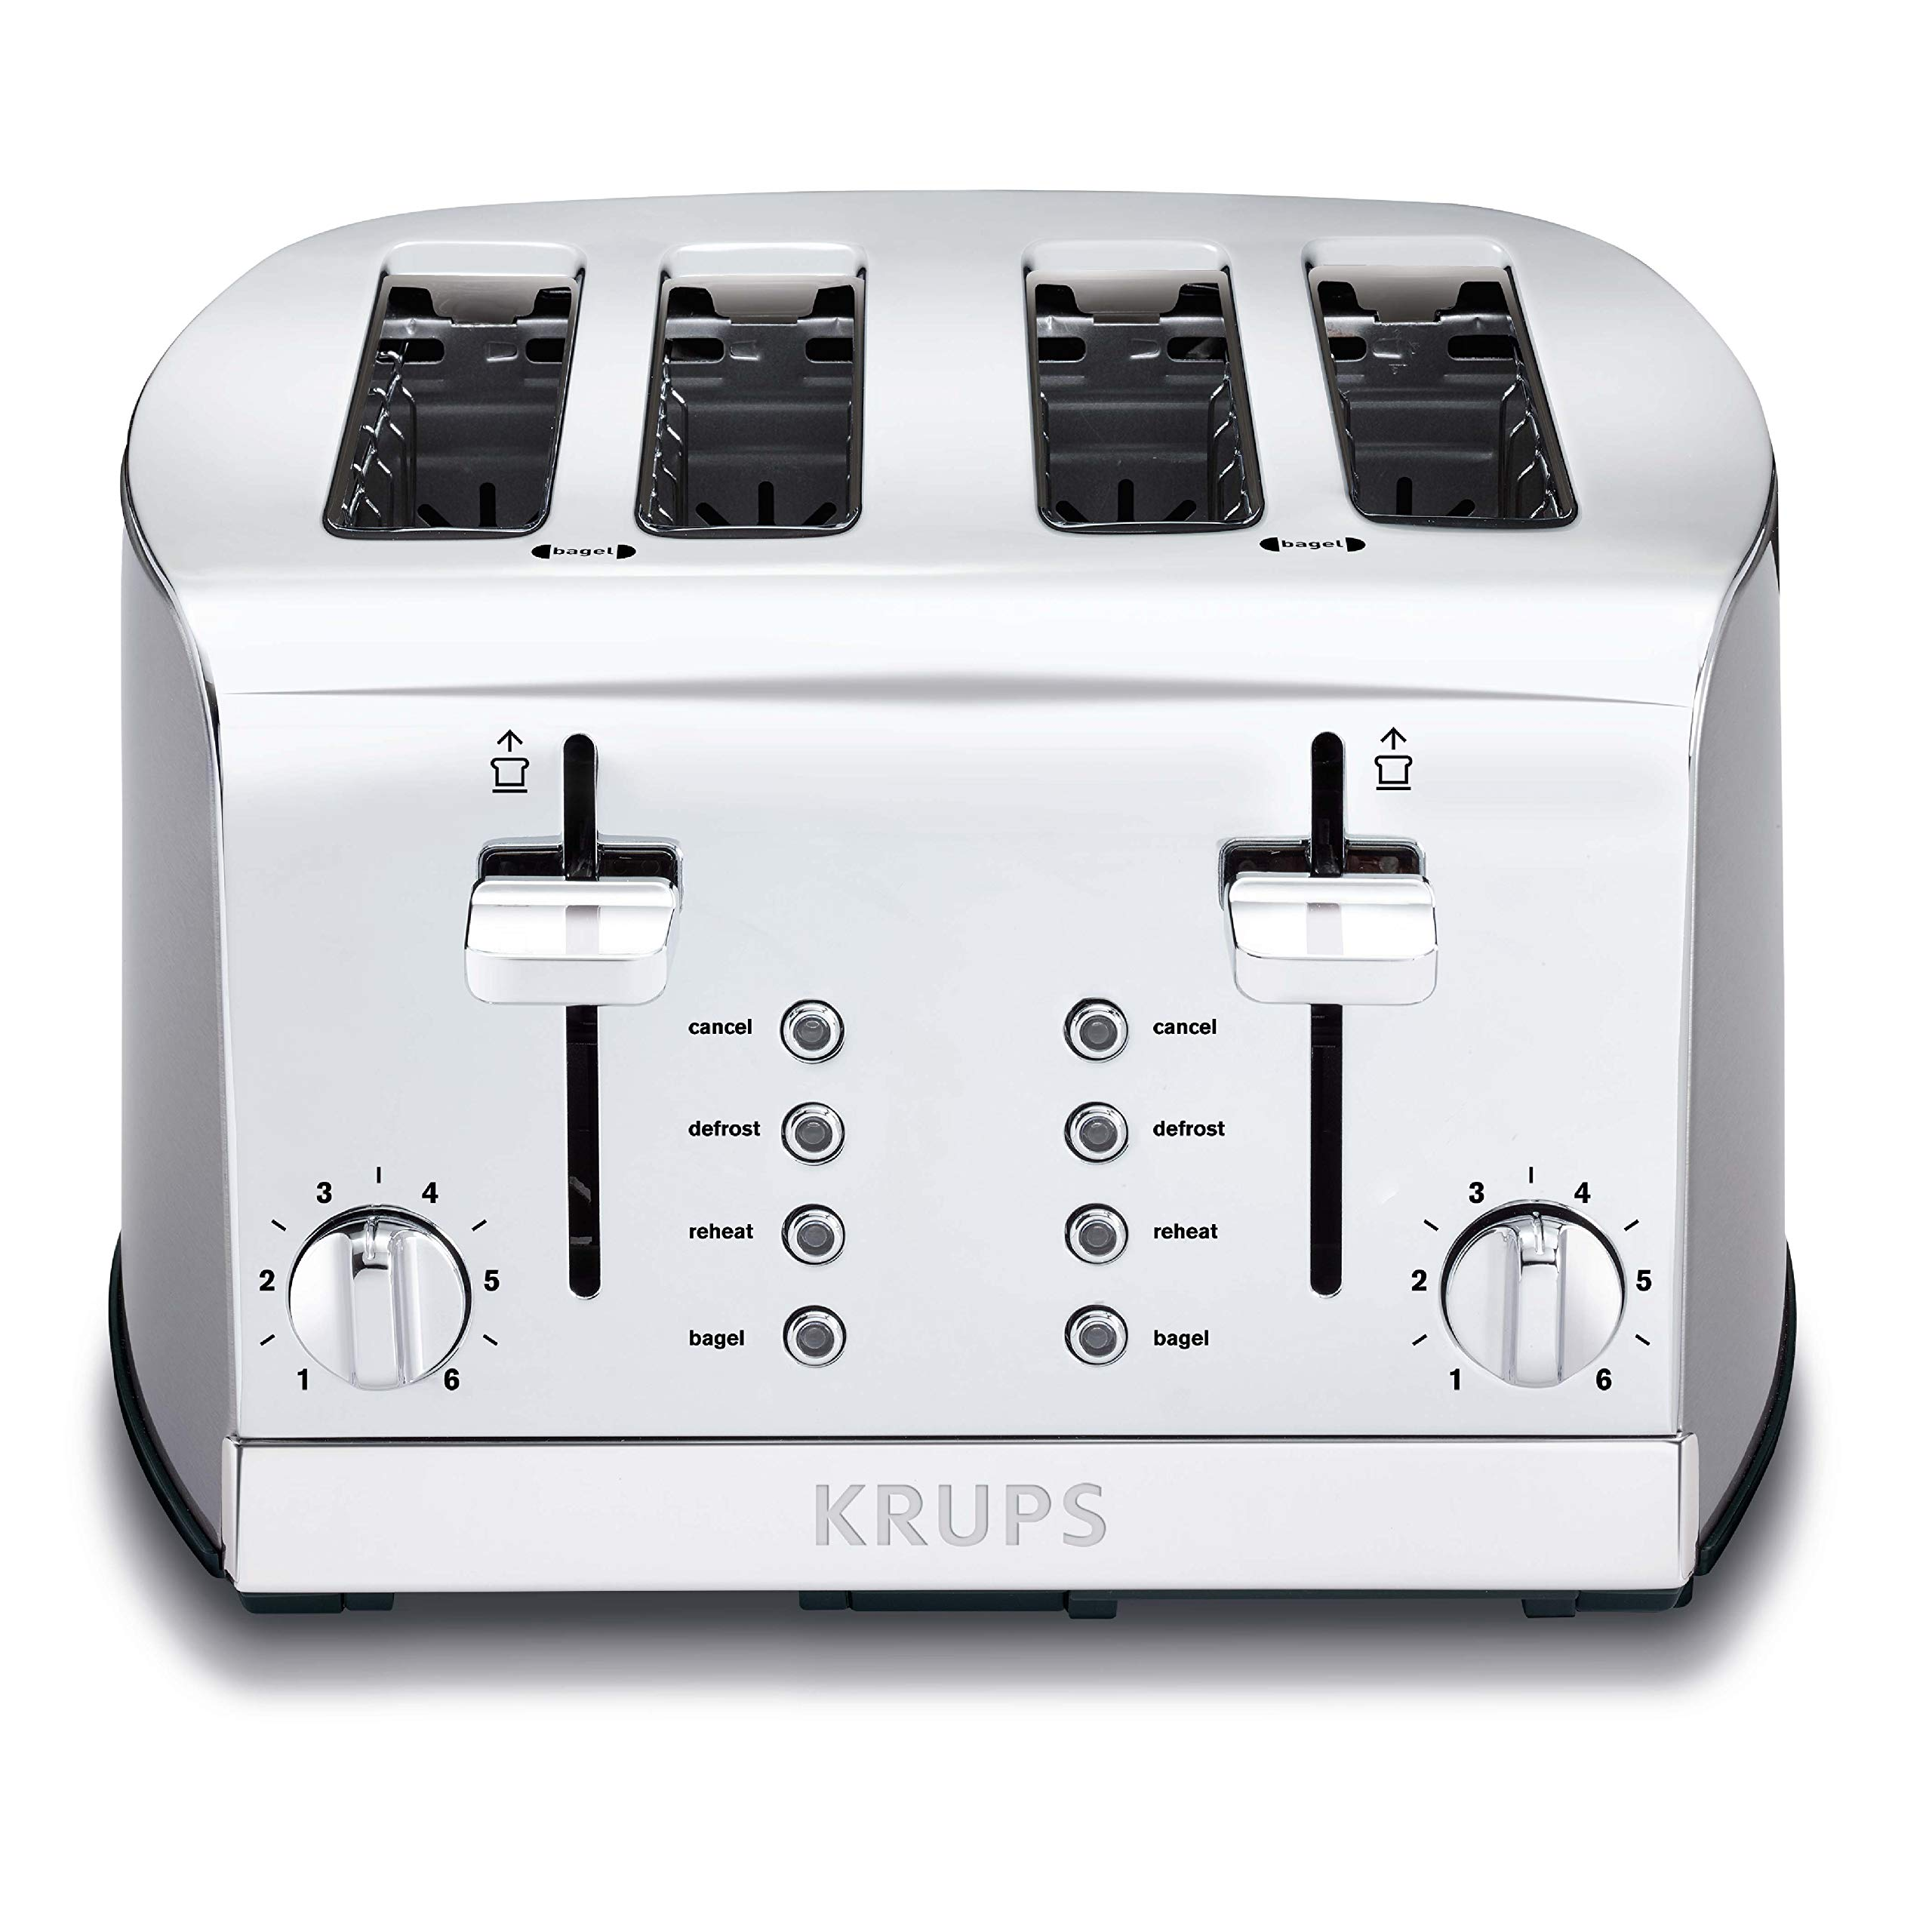 KRUPS KH734D Breakfast Set 4-Slot Toaster with Brushed and Chrome Stainless Steel Housing, 4-Slices with Dual Independent Control Panel, Silver by KRUPS